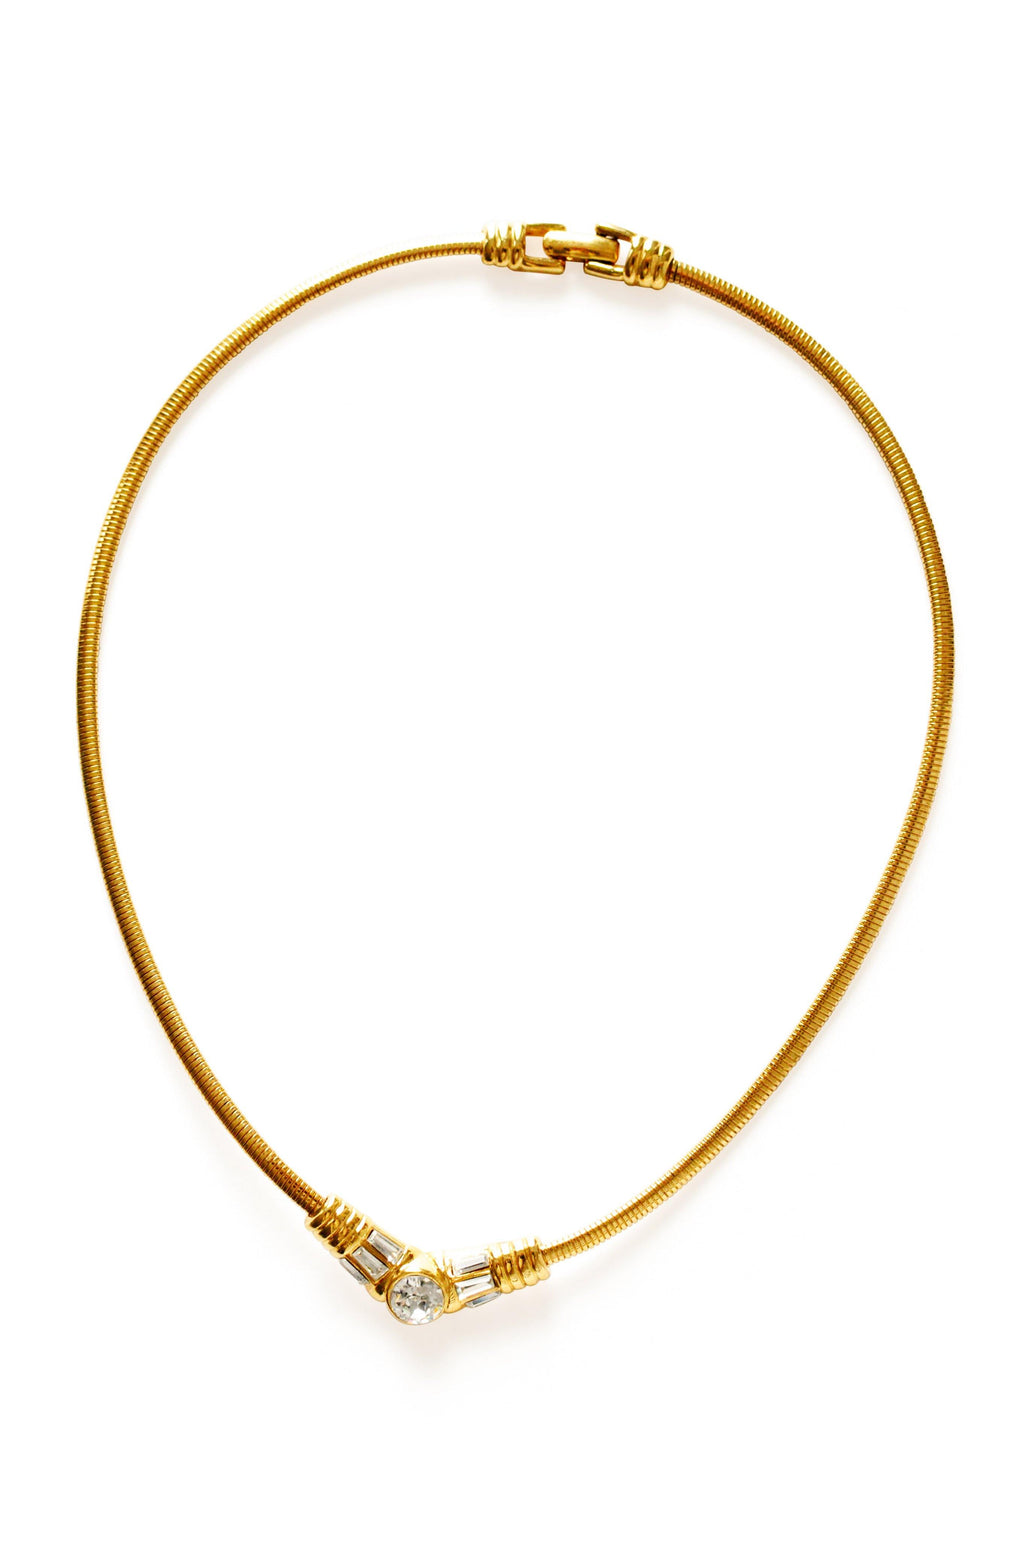 Monet Rhinestone Gold Necklace